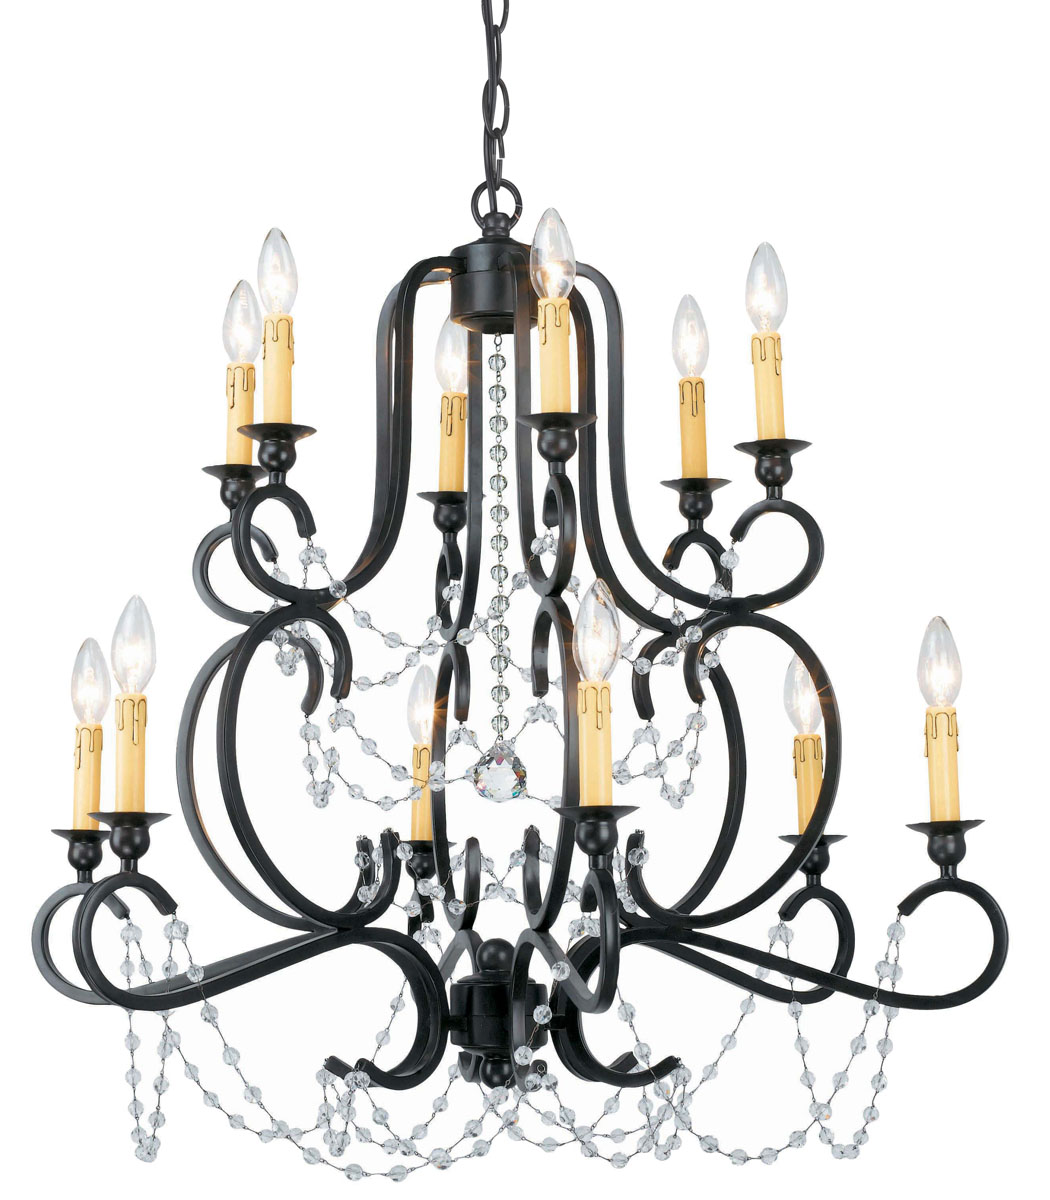 Crystorama Black Iron Wall Chandeliers Draped With Clear